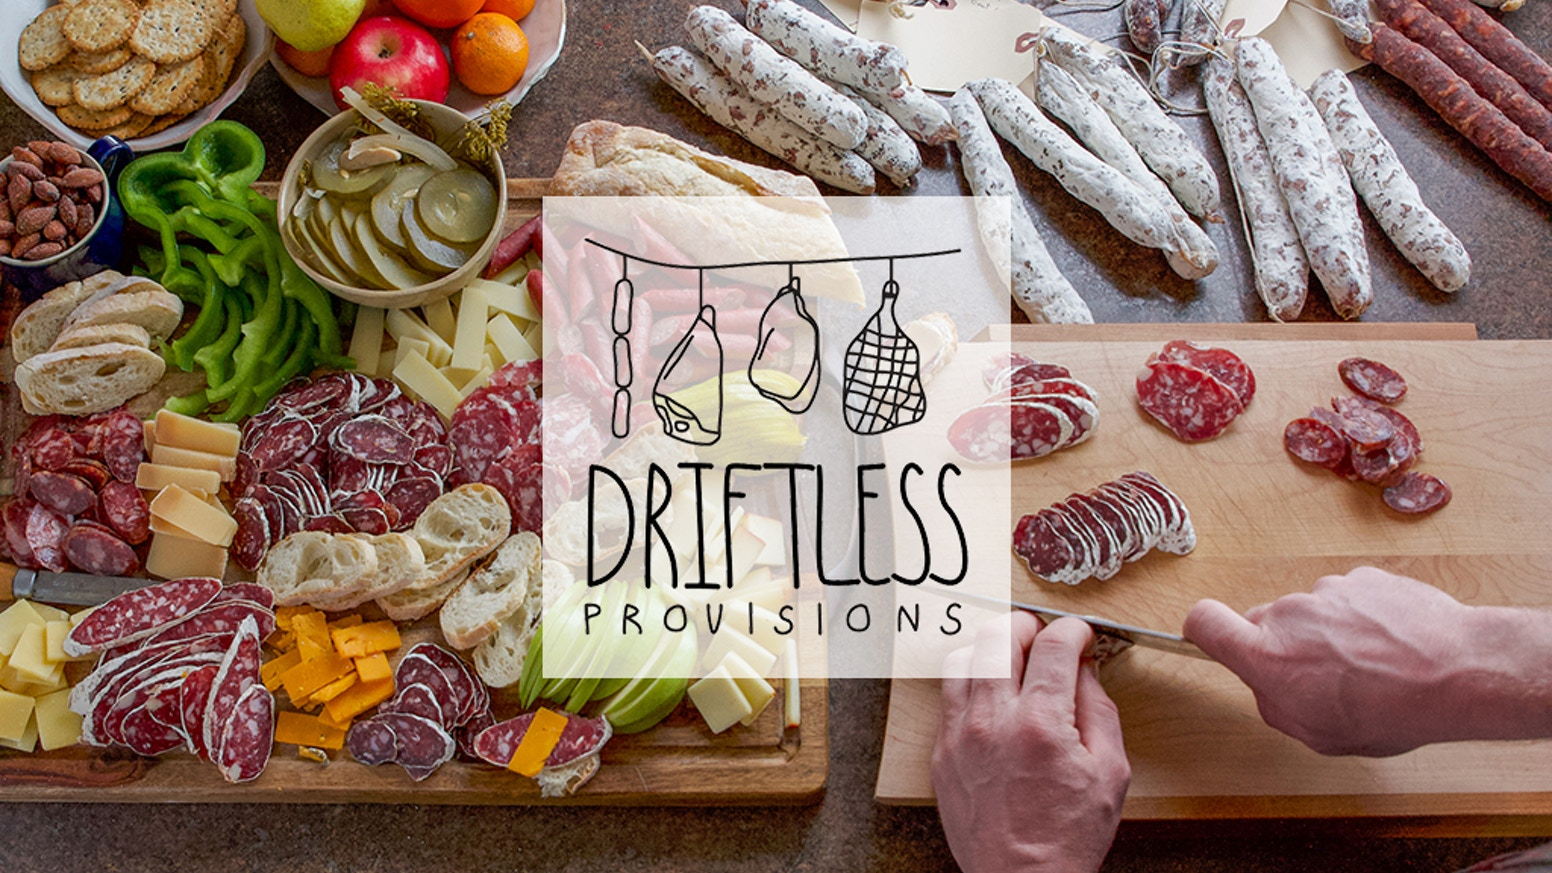 Dry-cured salami from the heart of the Driftless in SW WI. Celebrating the connections between the land, animals, farmers, & you.